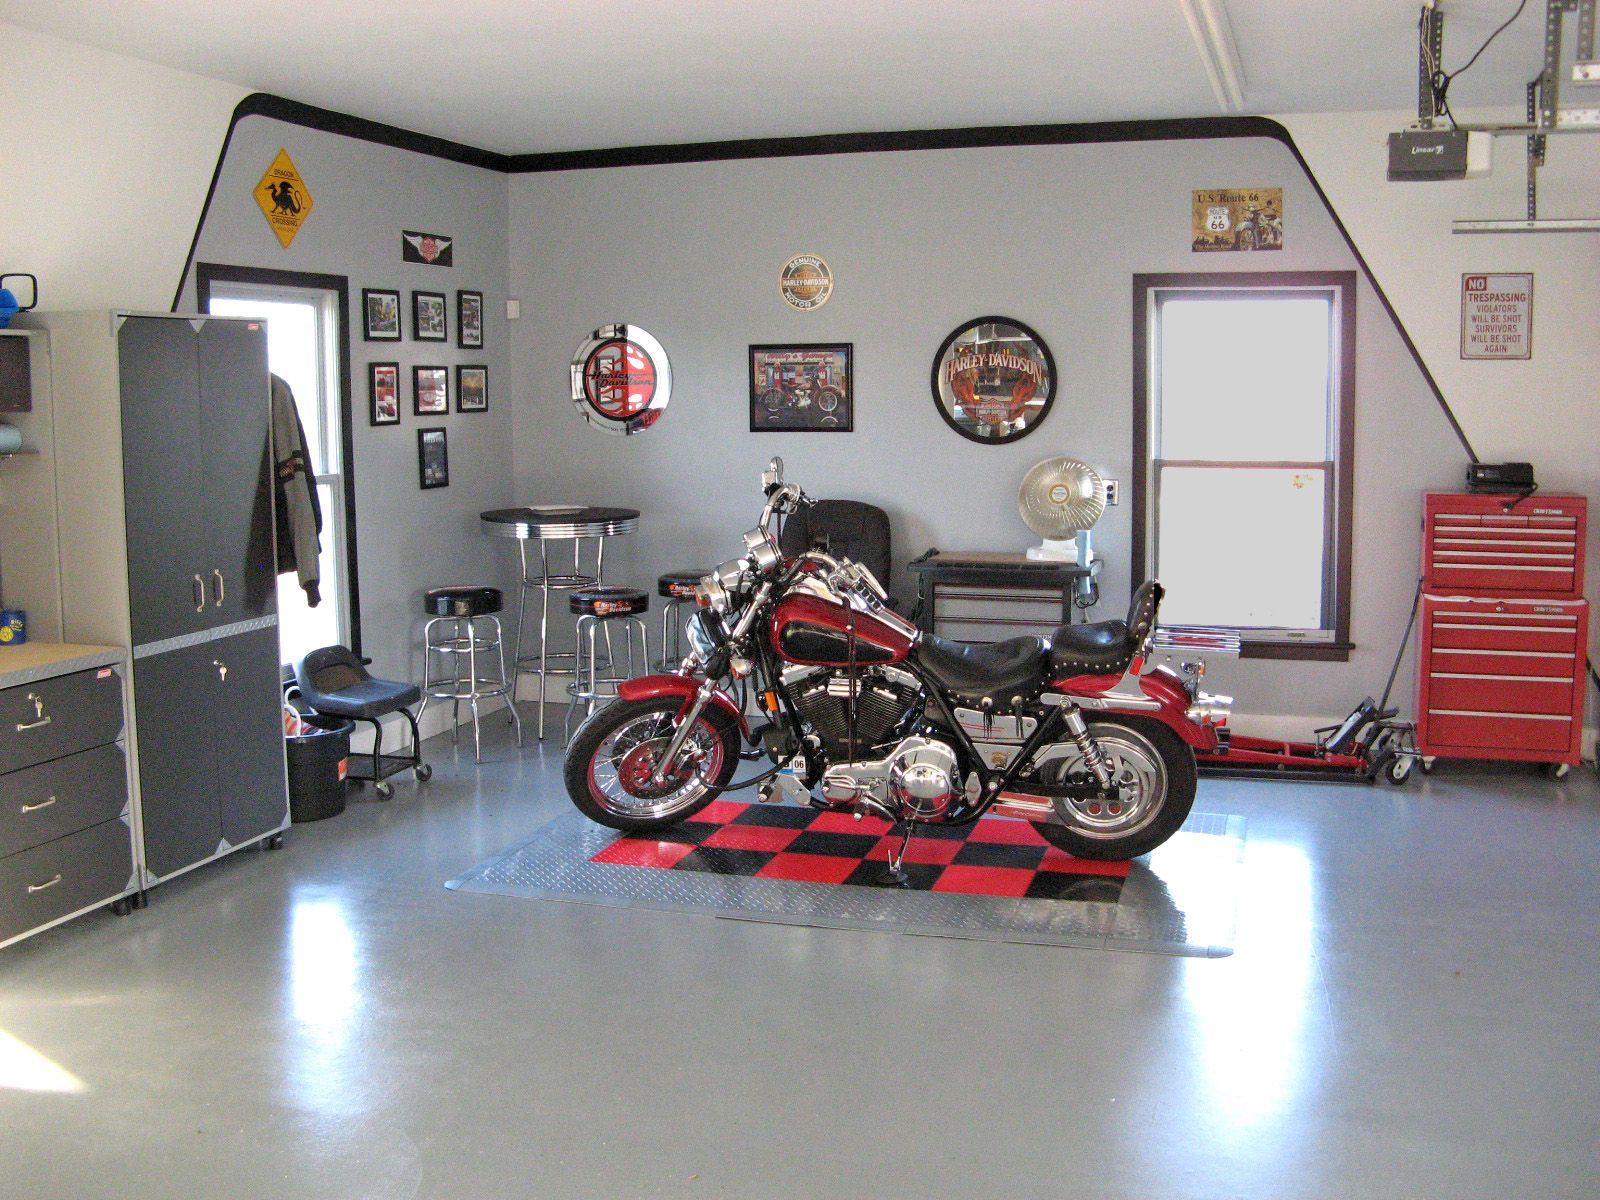 Great Interior Garage Design For Motorcycle In The Main Room